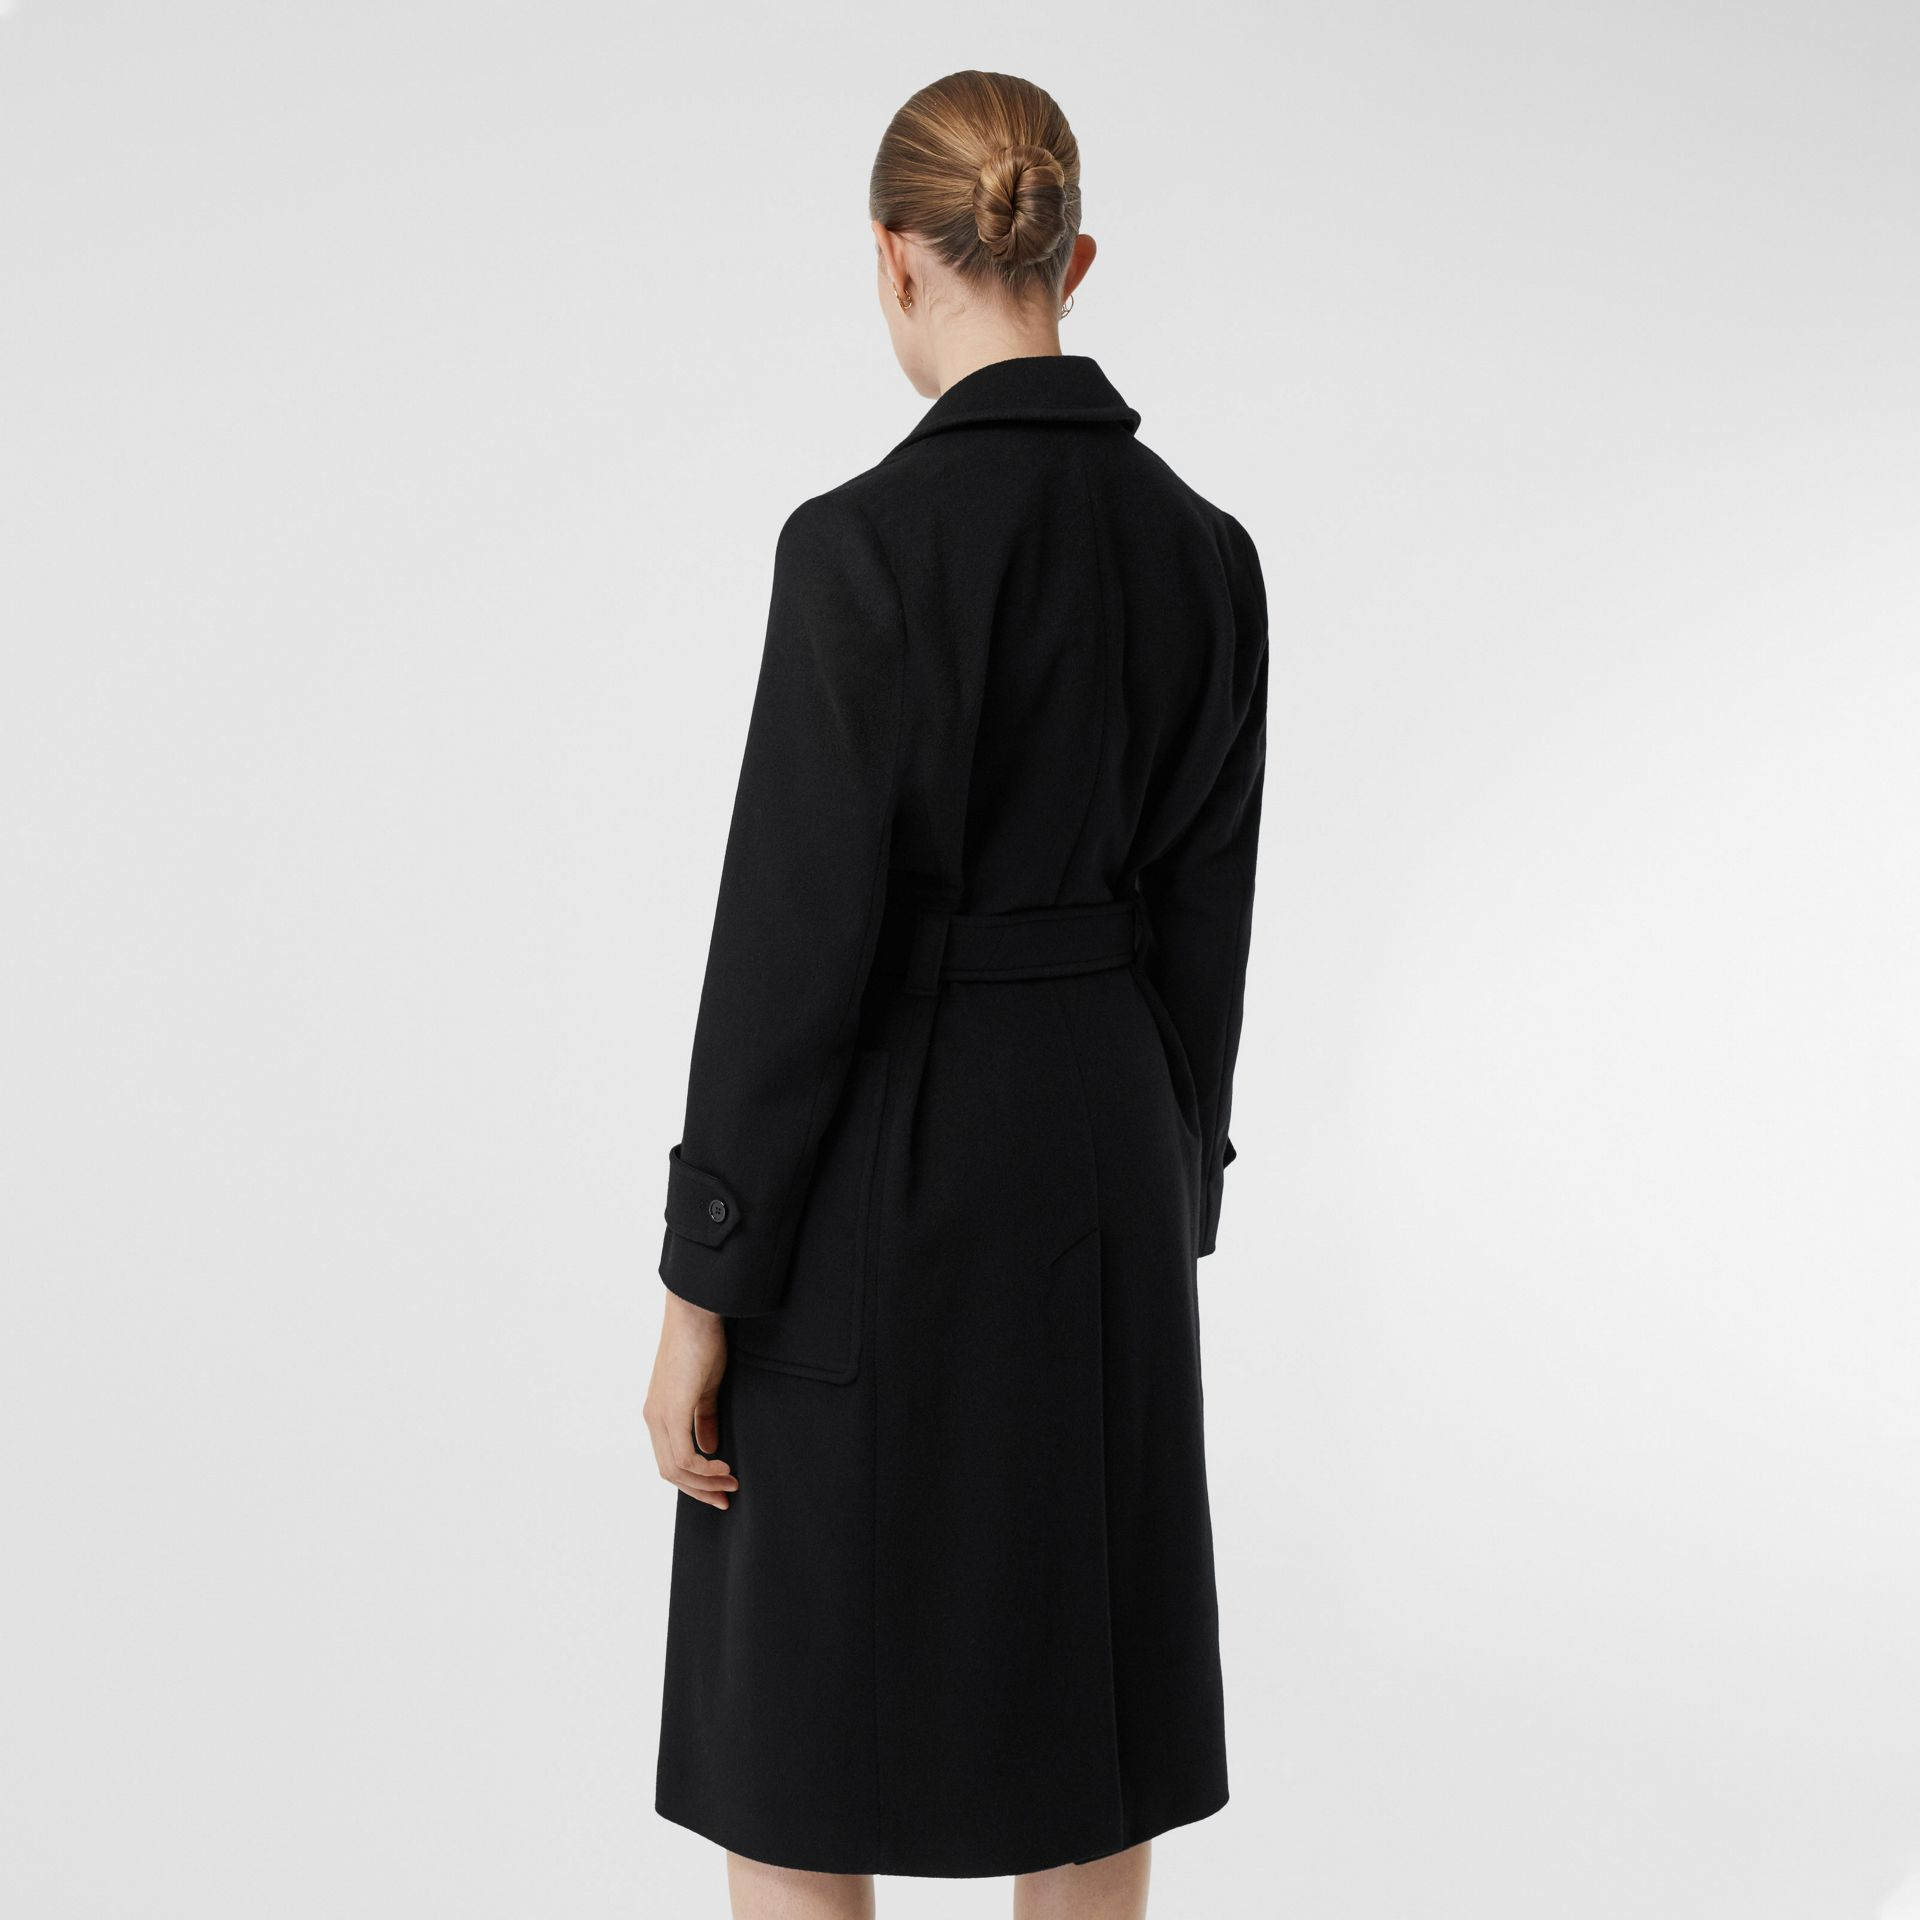 Cashmere Wrap Coat in Black - Women | Burberry - gallery image 2